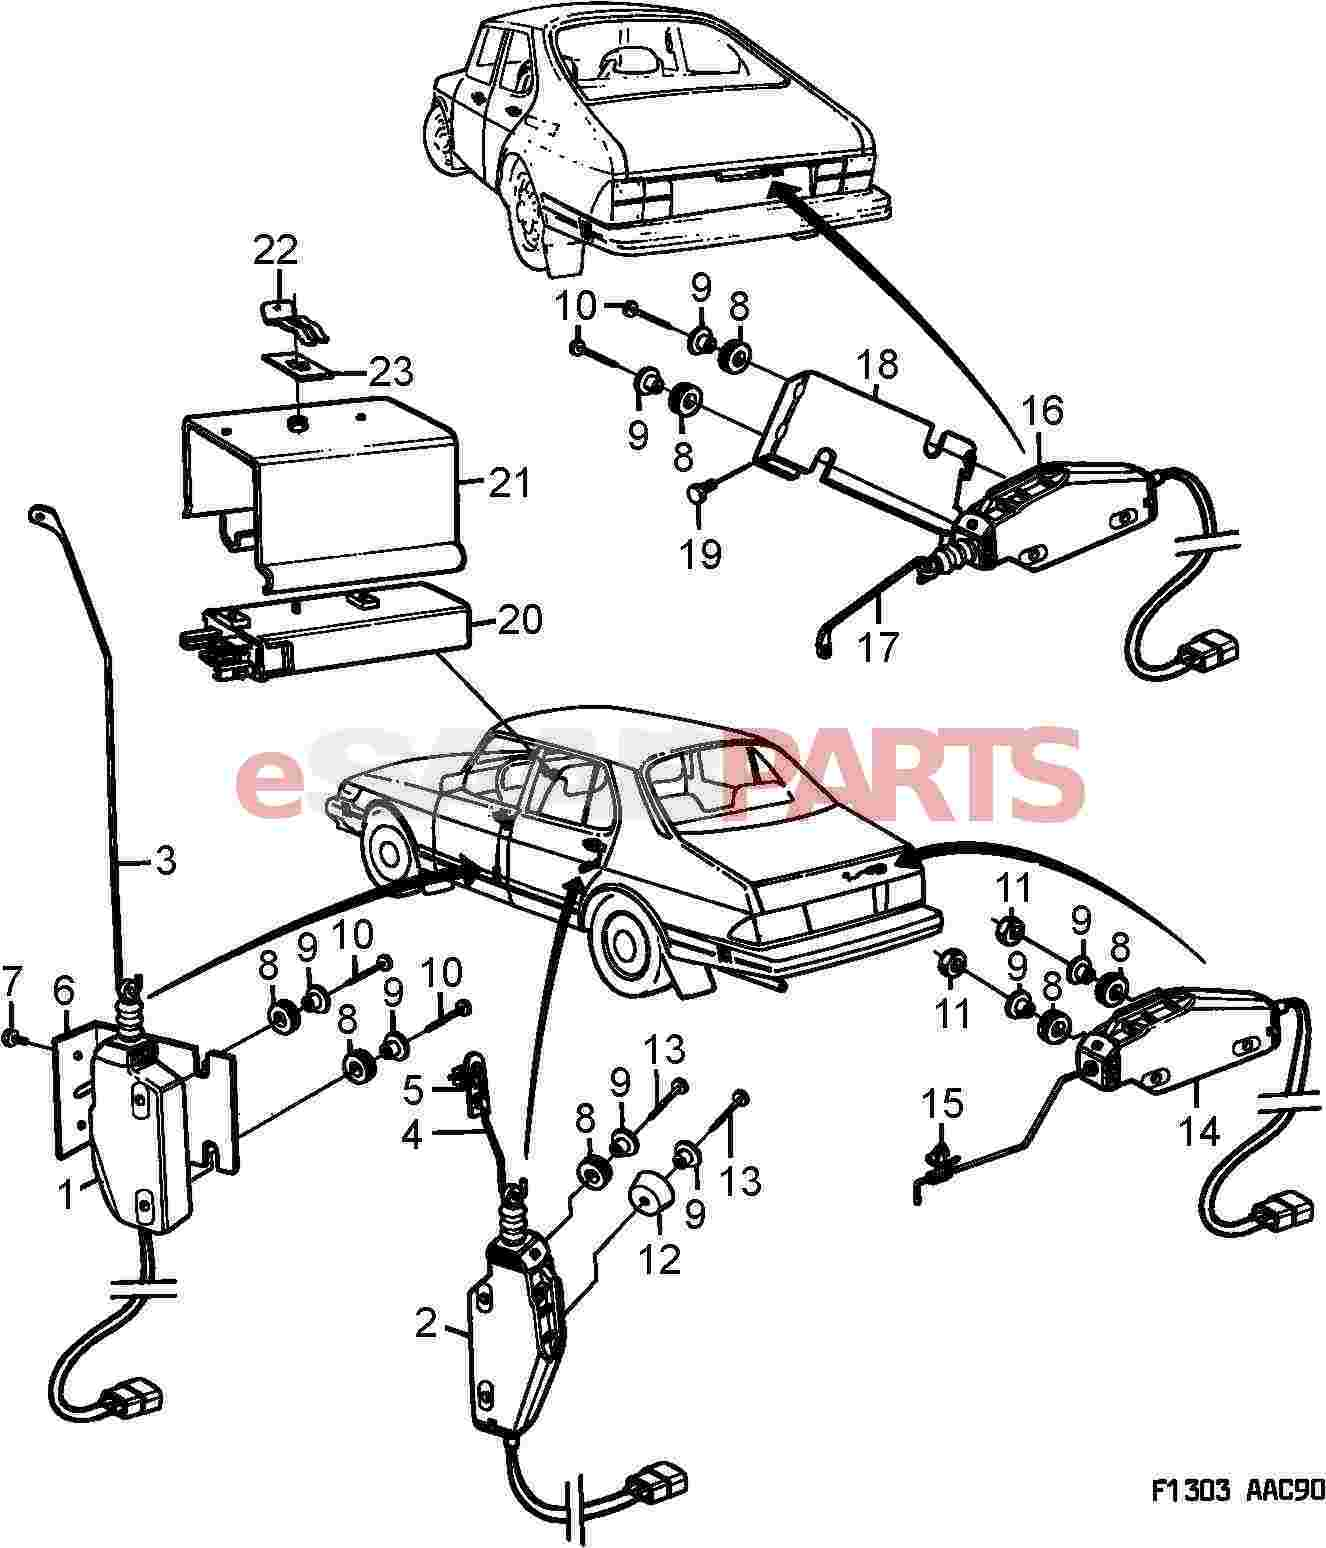 Toyota Mr2 Coolant Diagram Html